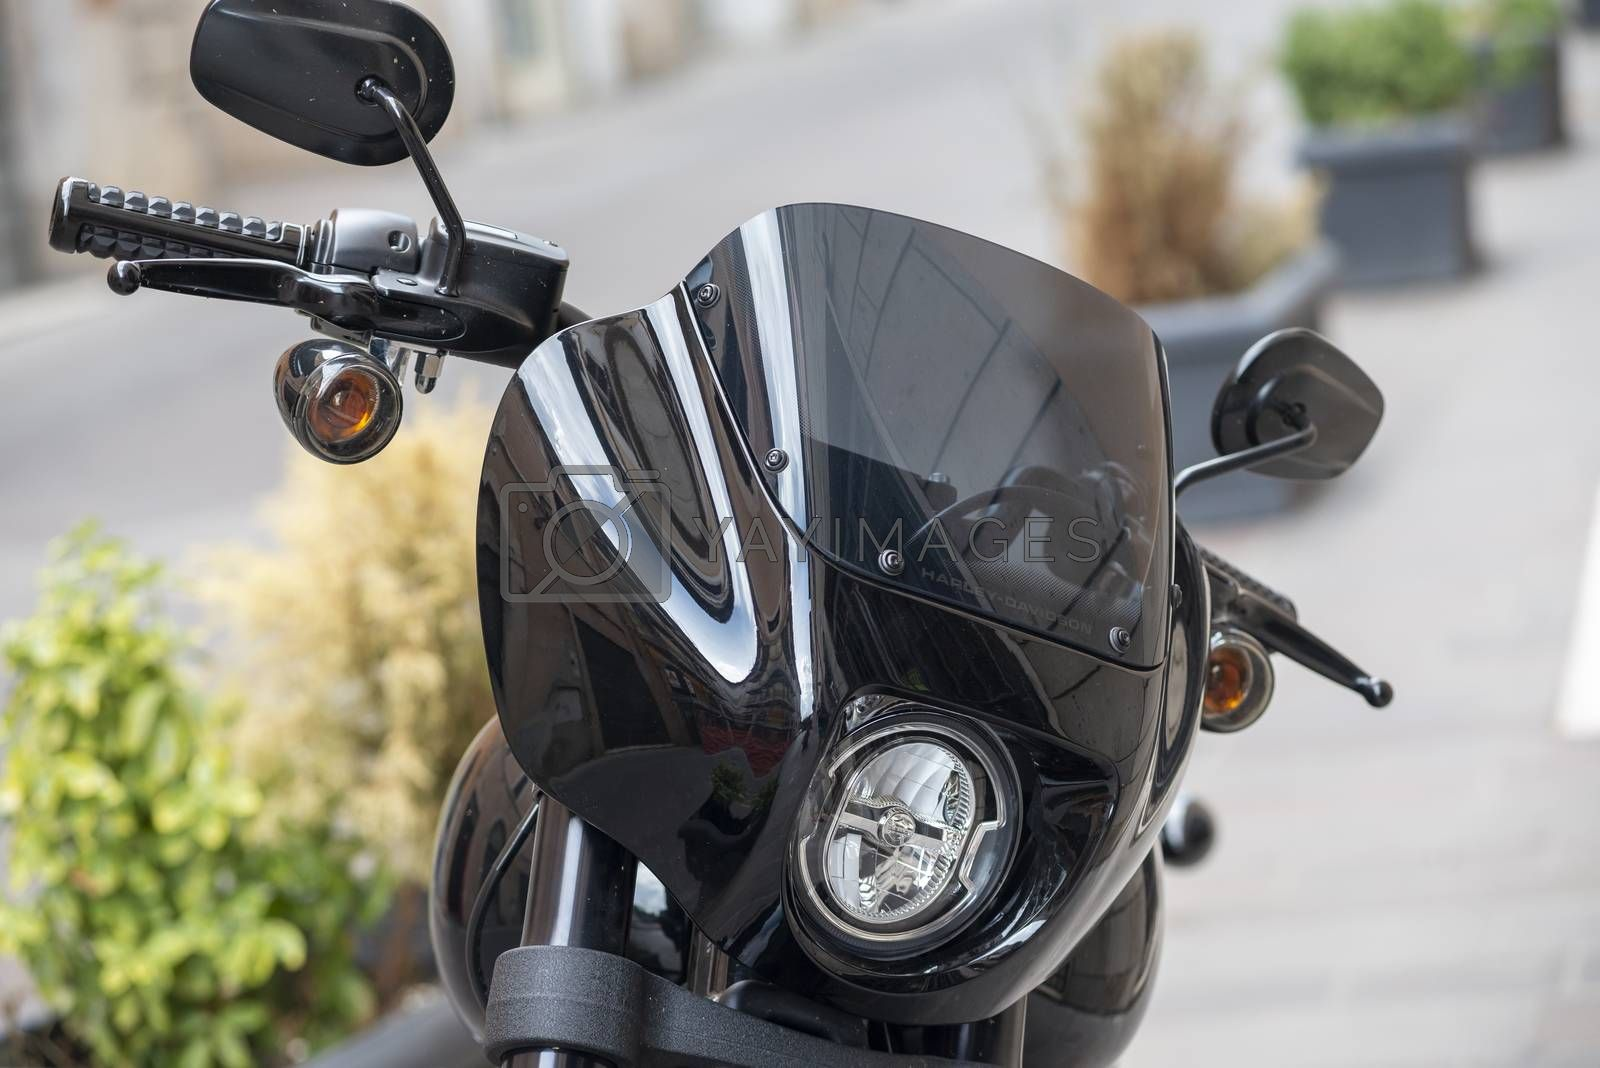 terni,italy august 16 2020:details of a harley davidson park